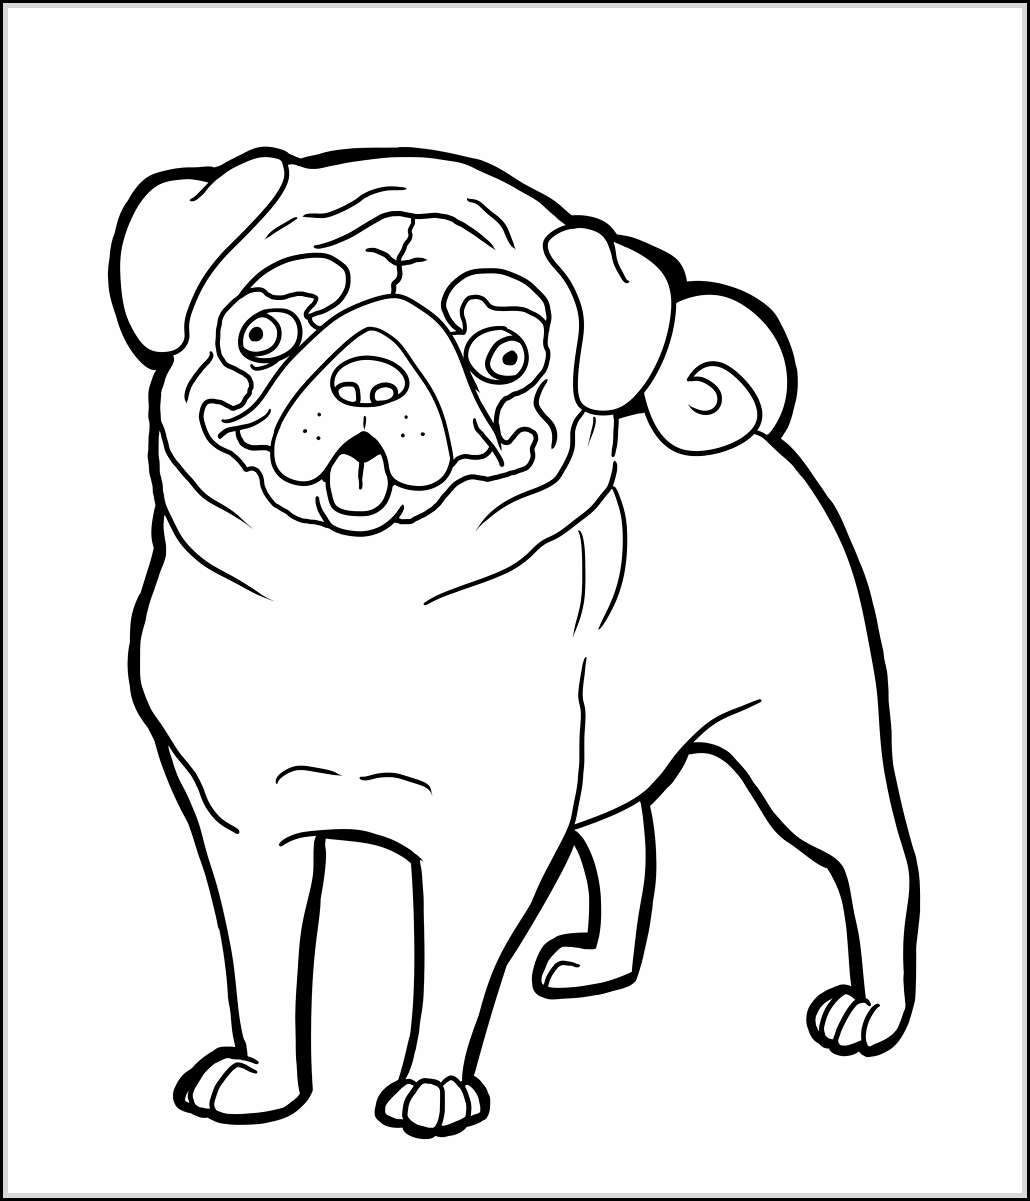 Pug To Print - Coloring Pages for Kids and for Adults